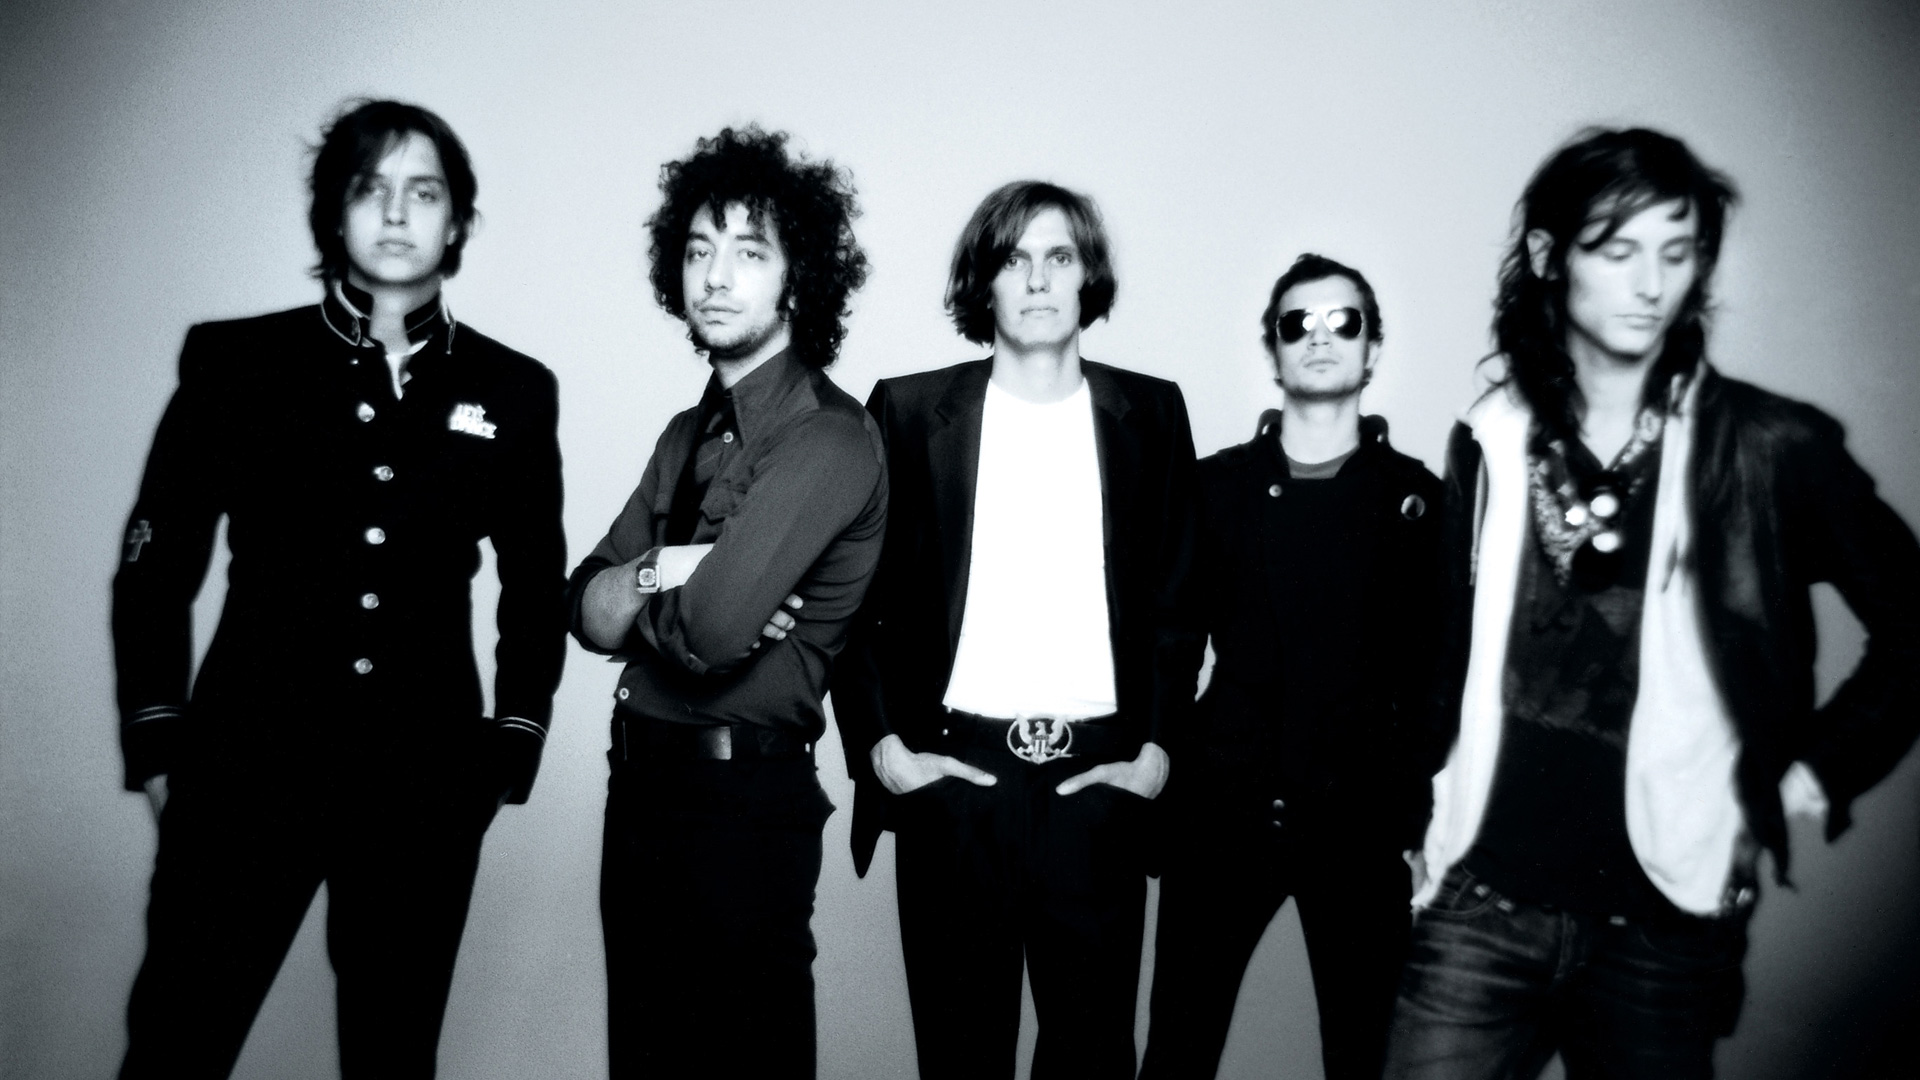 El ciclo Music Pill regresa con un homenaje a The Strokes